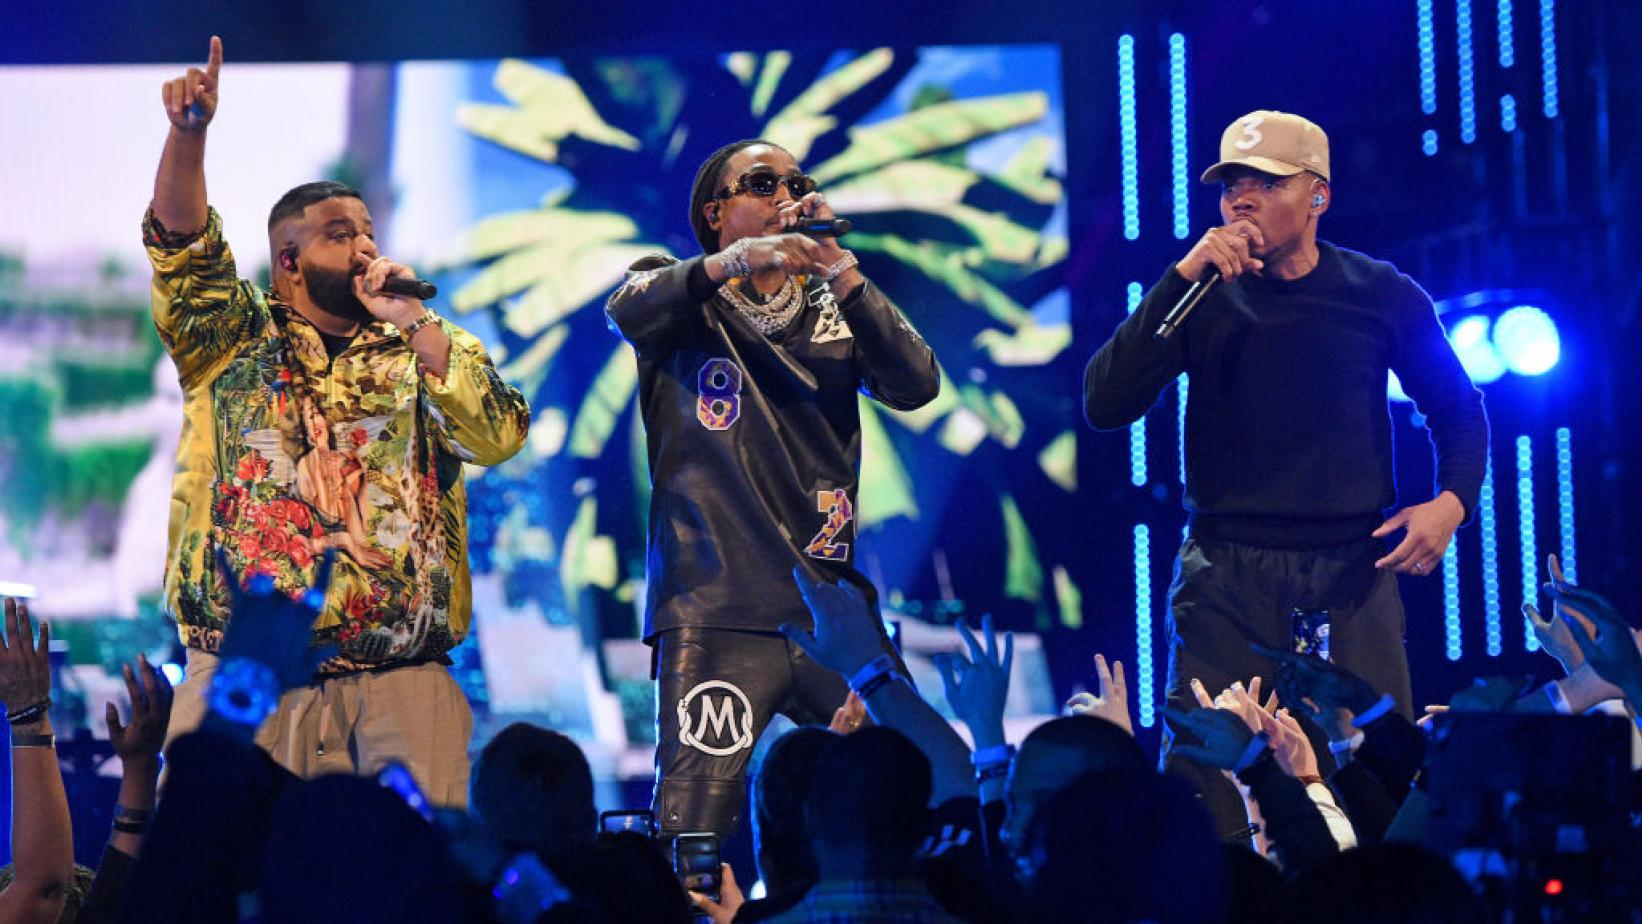 DJ Khaled, Quavo, and Chance The Rapper perform at the 2020 NBA All-Star Game